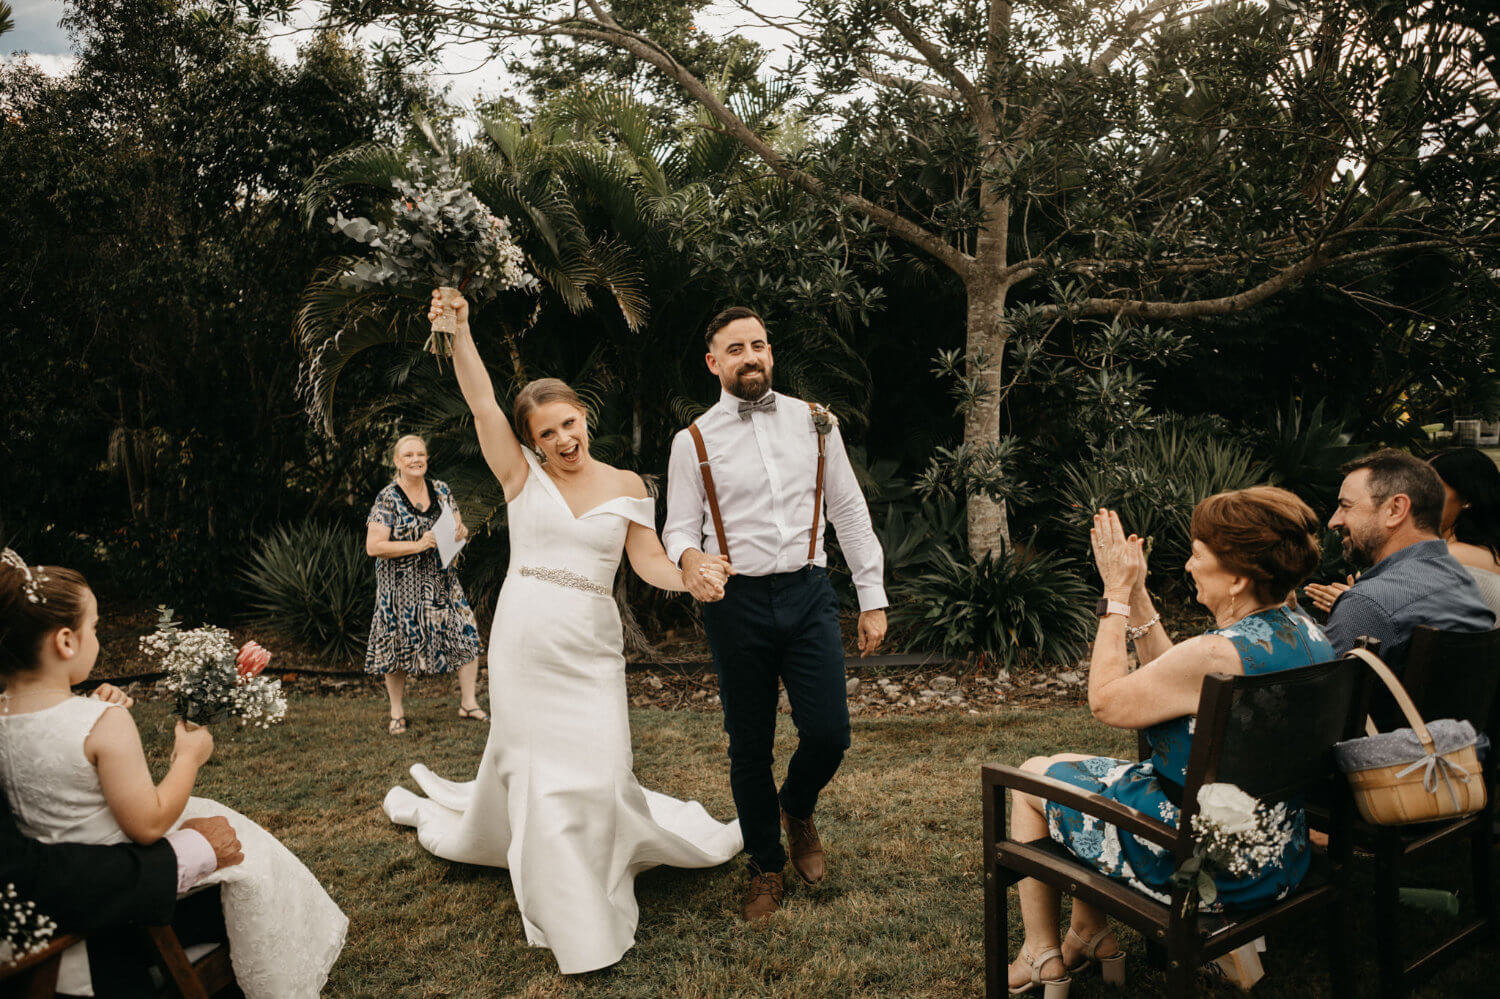 Chic Wedding Planners Toowoomba Brisbane Warrior Rose Events Rawn and Pallow Photography